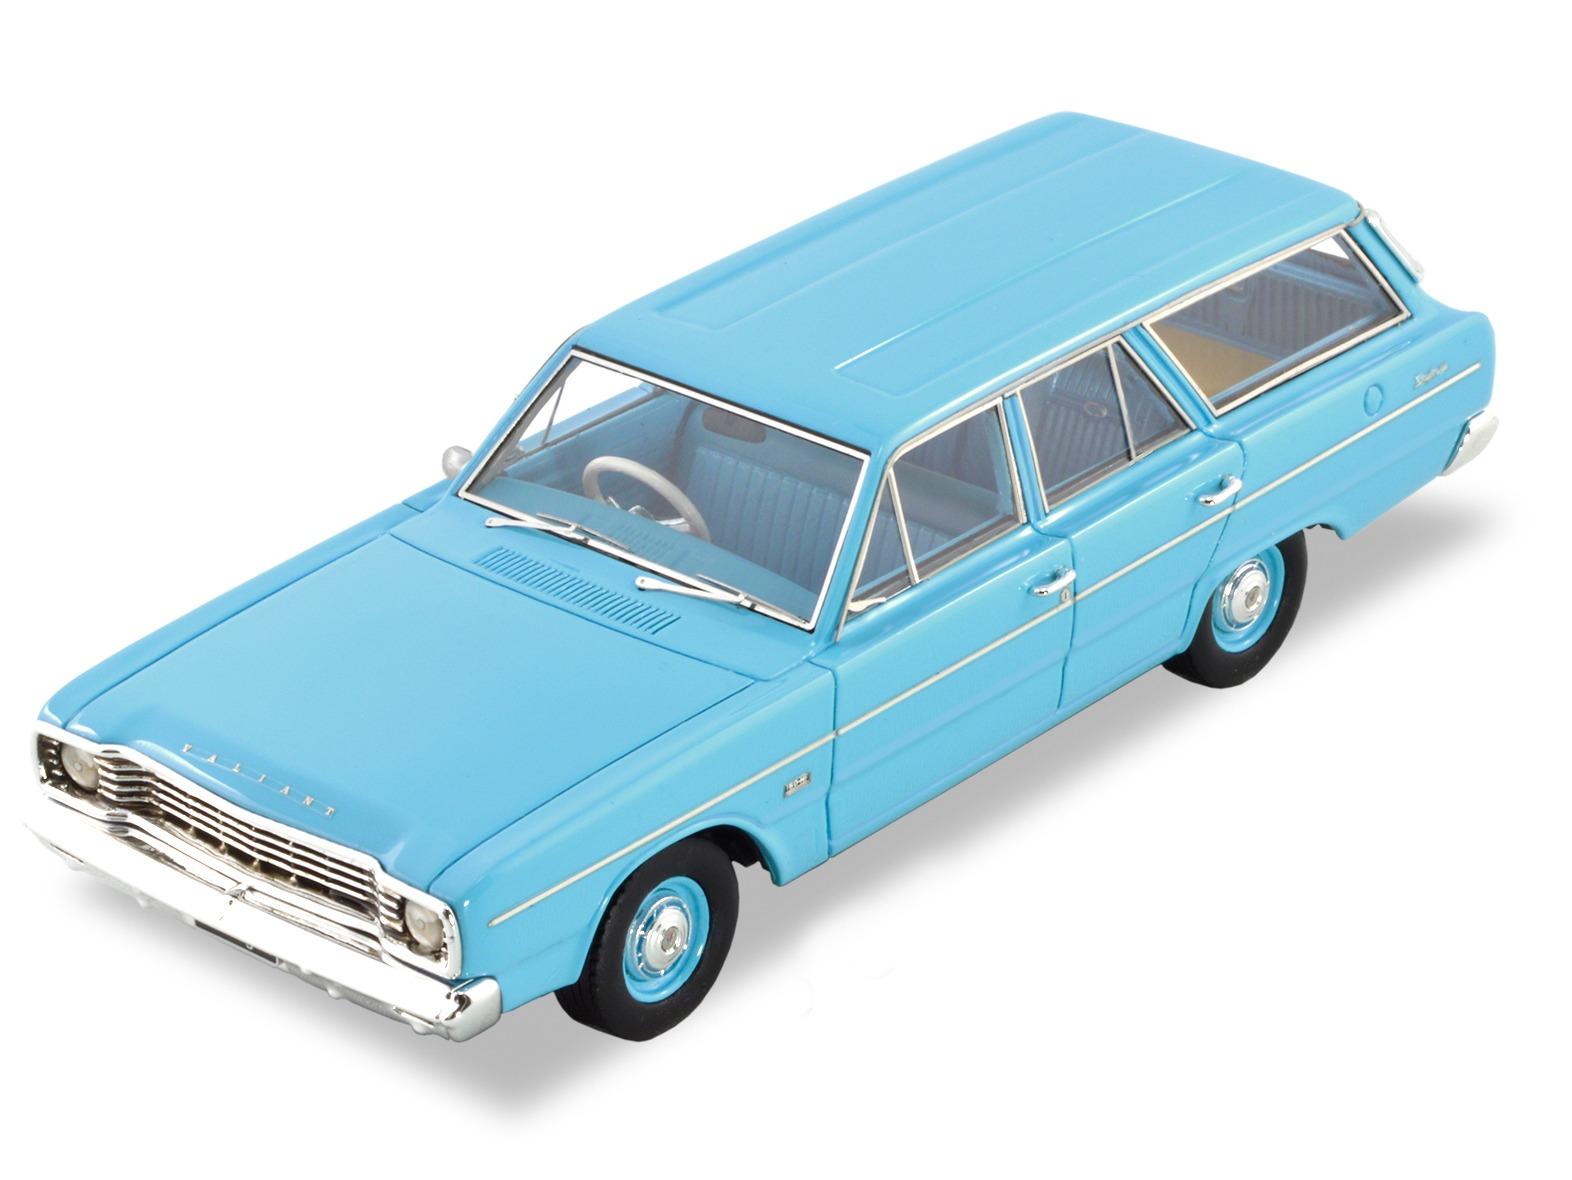 1967 VE Valiant Safari Station Wagon – Light Blue